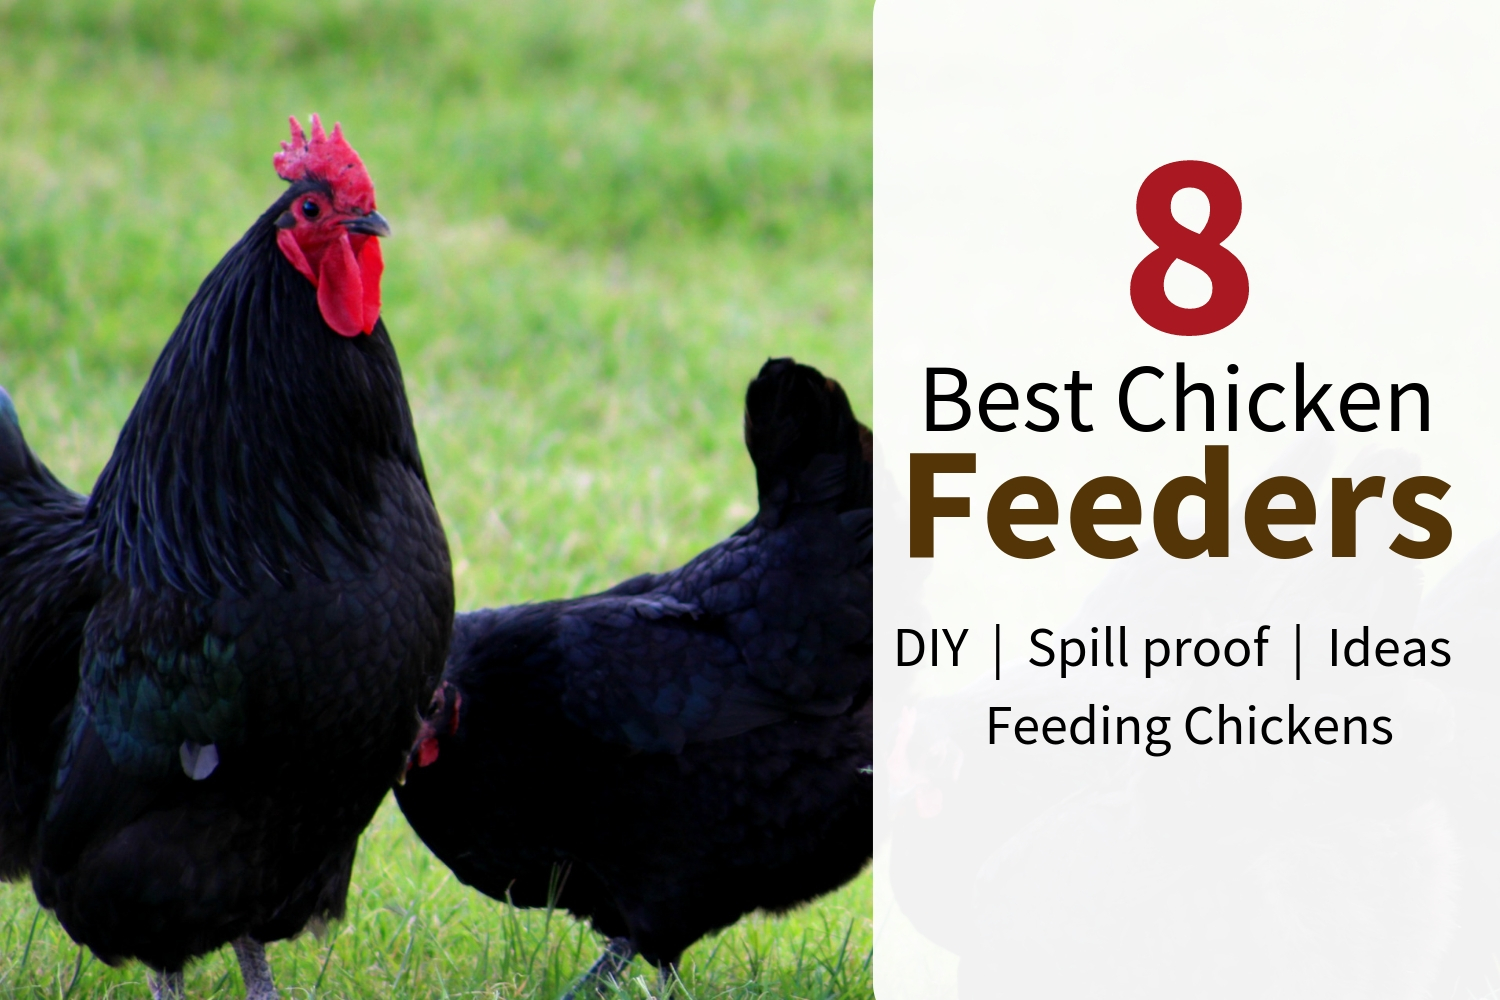 Feeding backyard chickens is always nicer with a custom DIY feeder. Check out these 8 best feeder ideas to build your perfect automatic chicken food feeder today! #backyardchickens #feeders #food